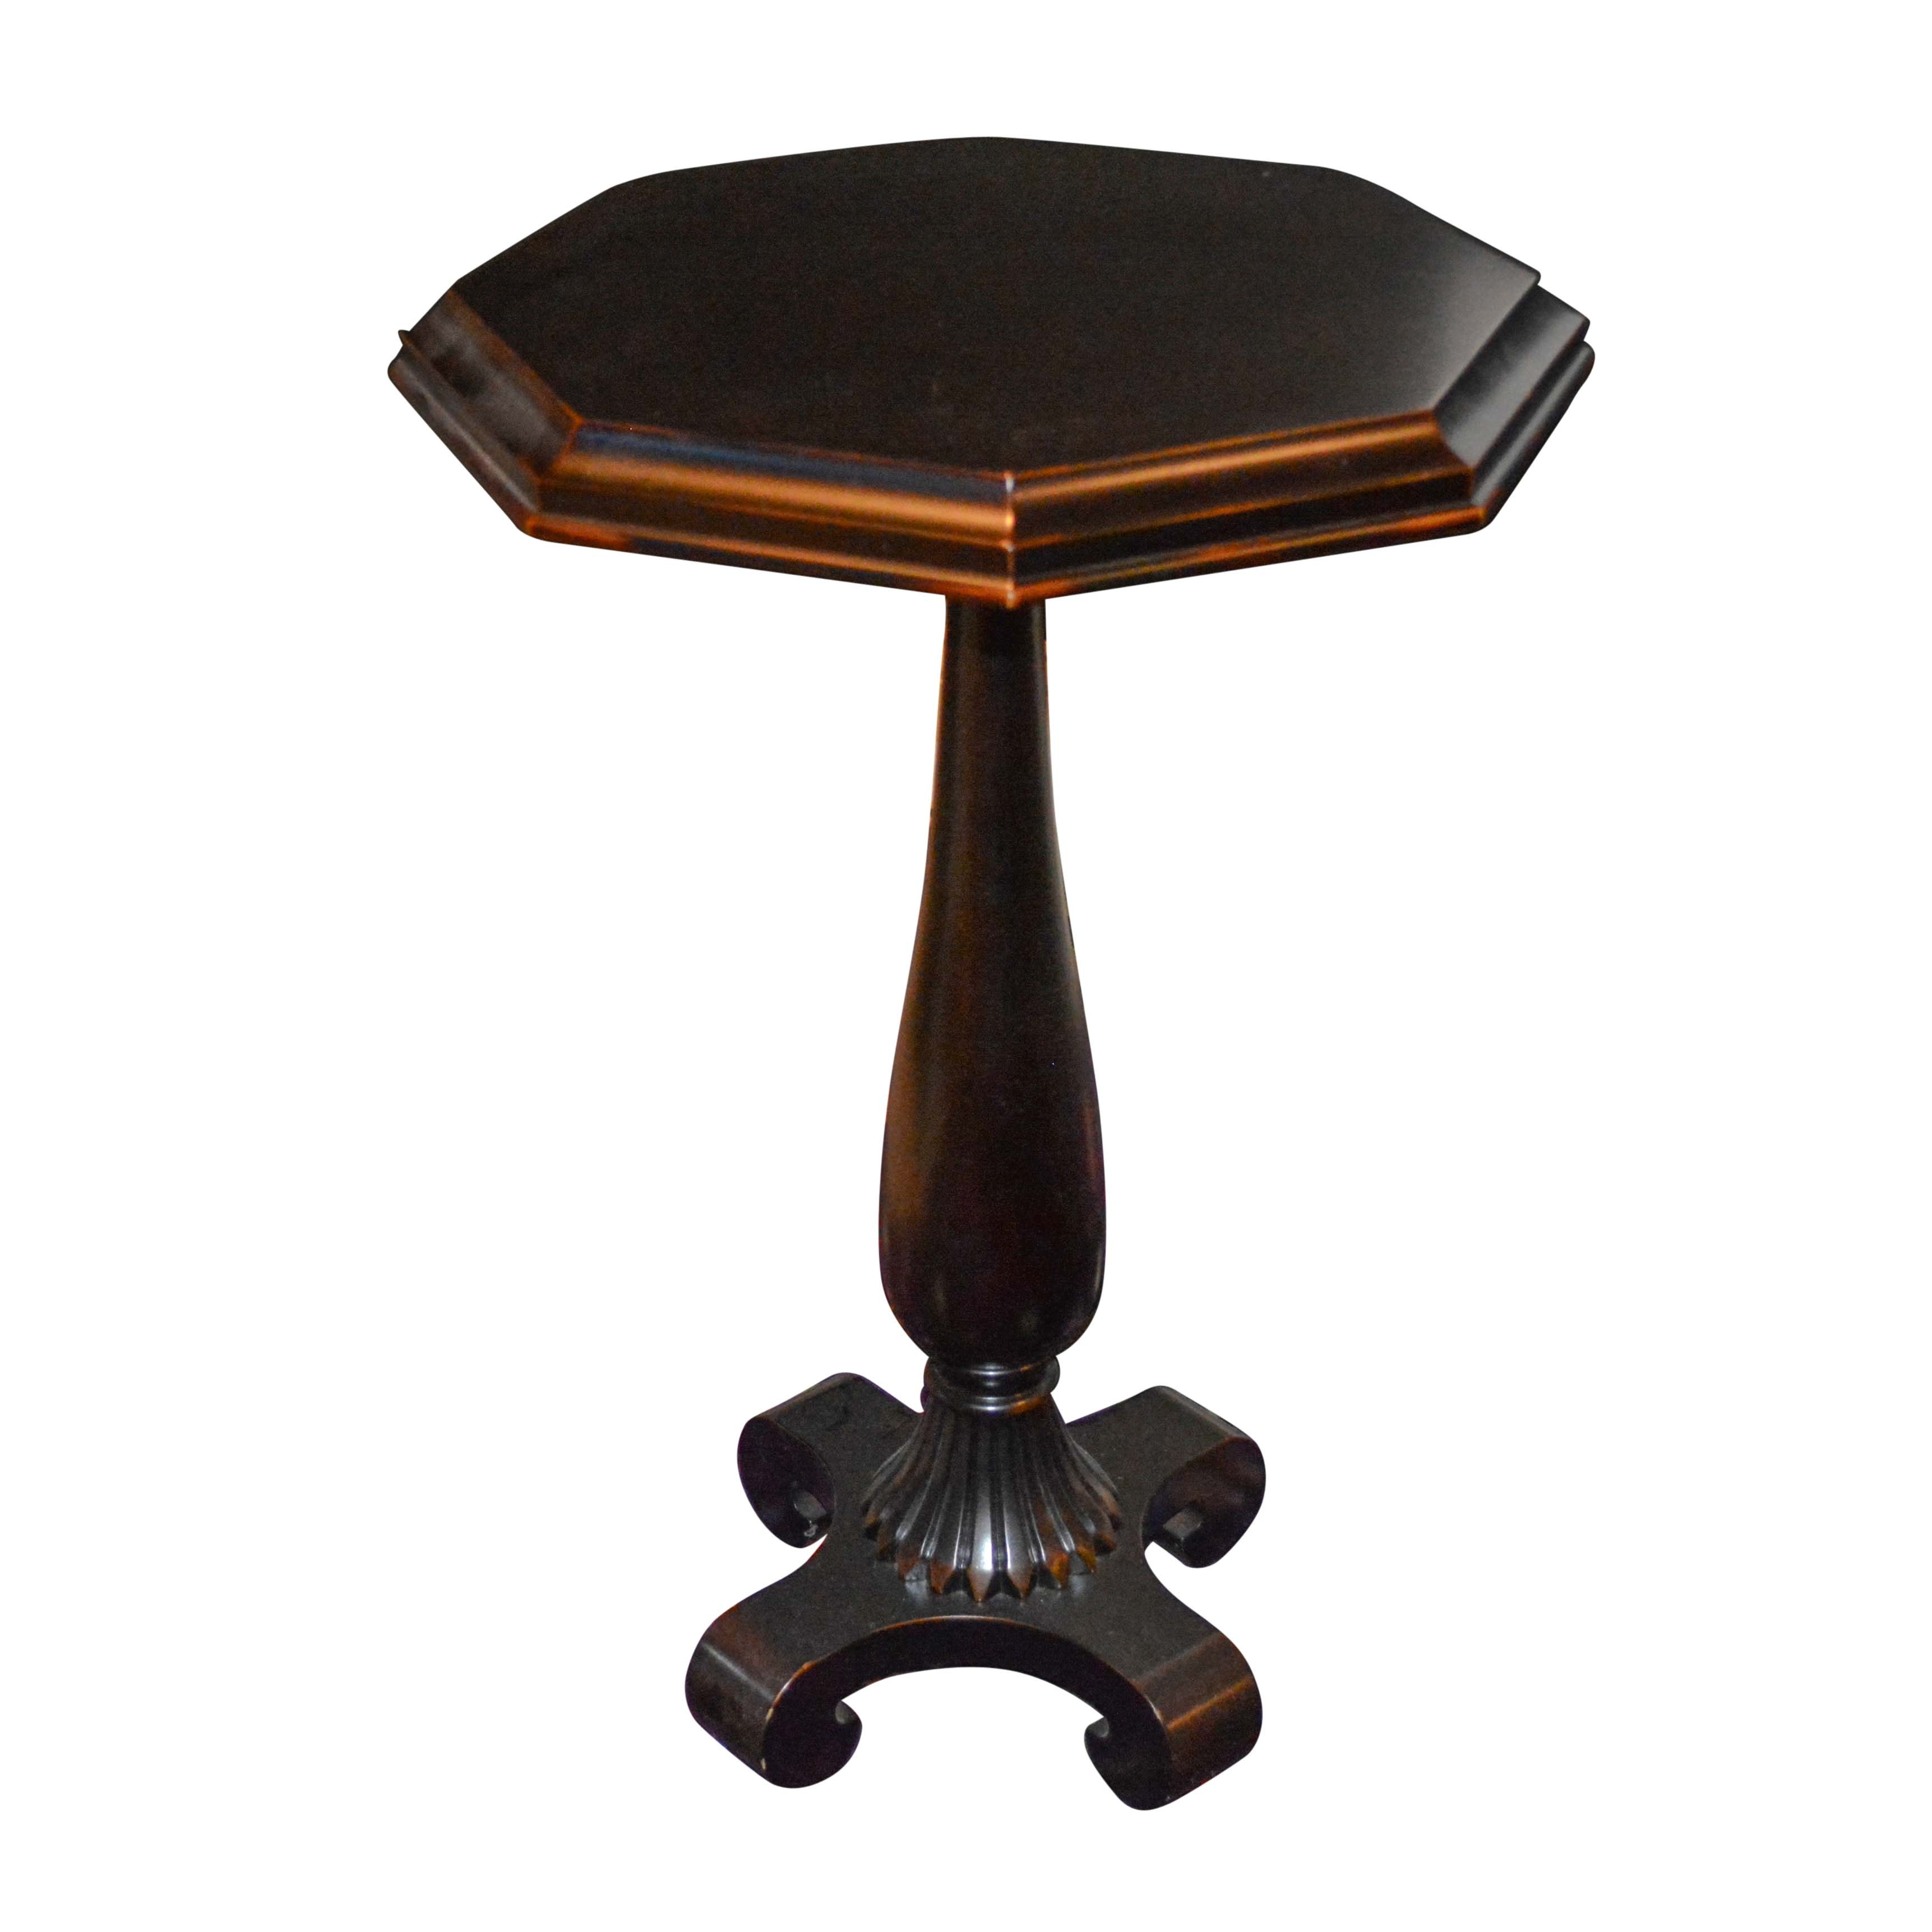 Octagonal Wooden Accent Table with Copper-Toned Accents